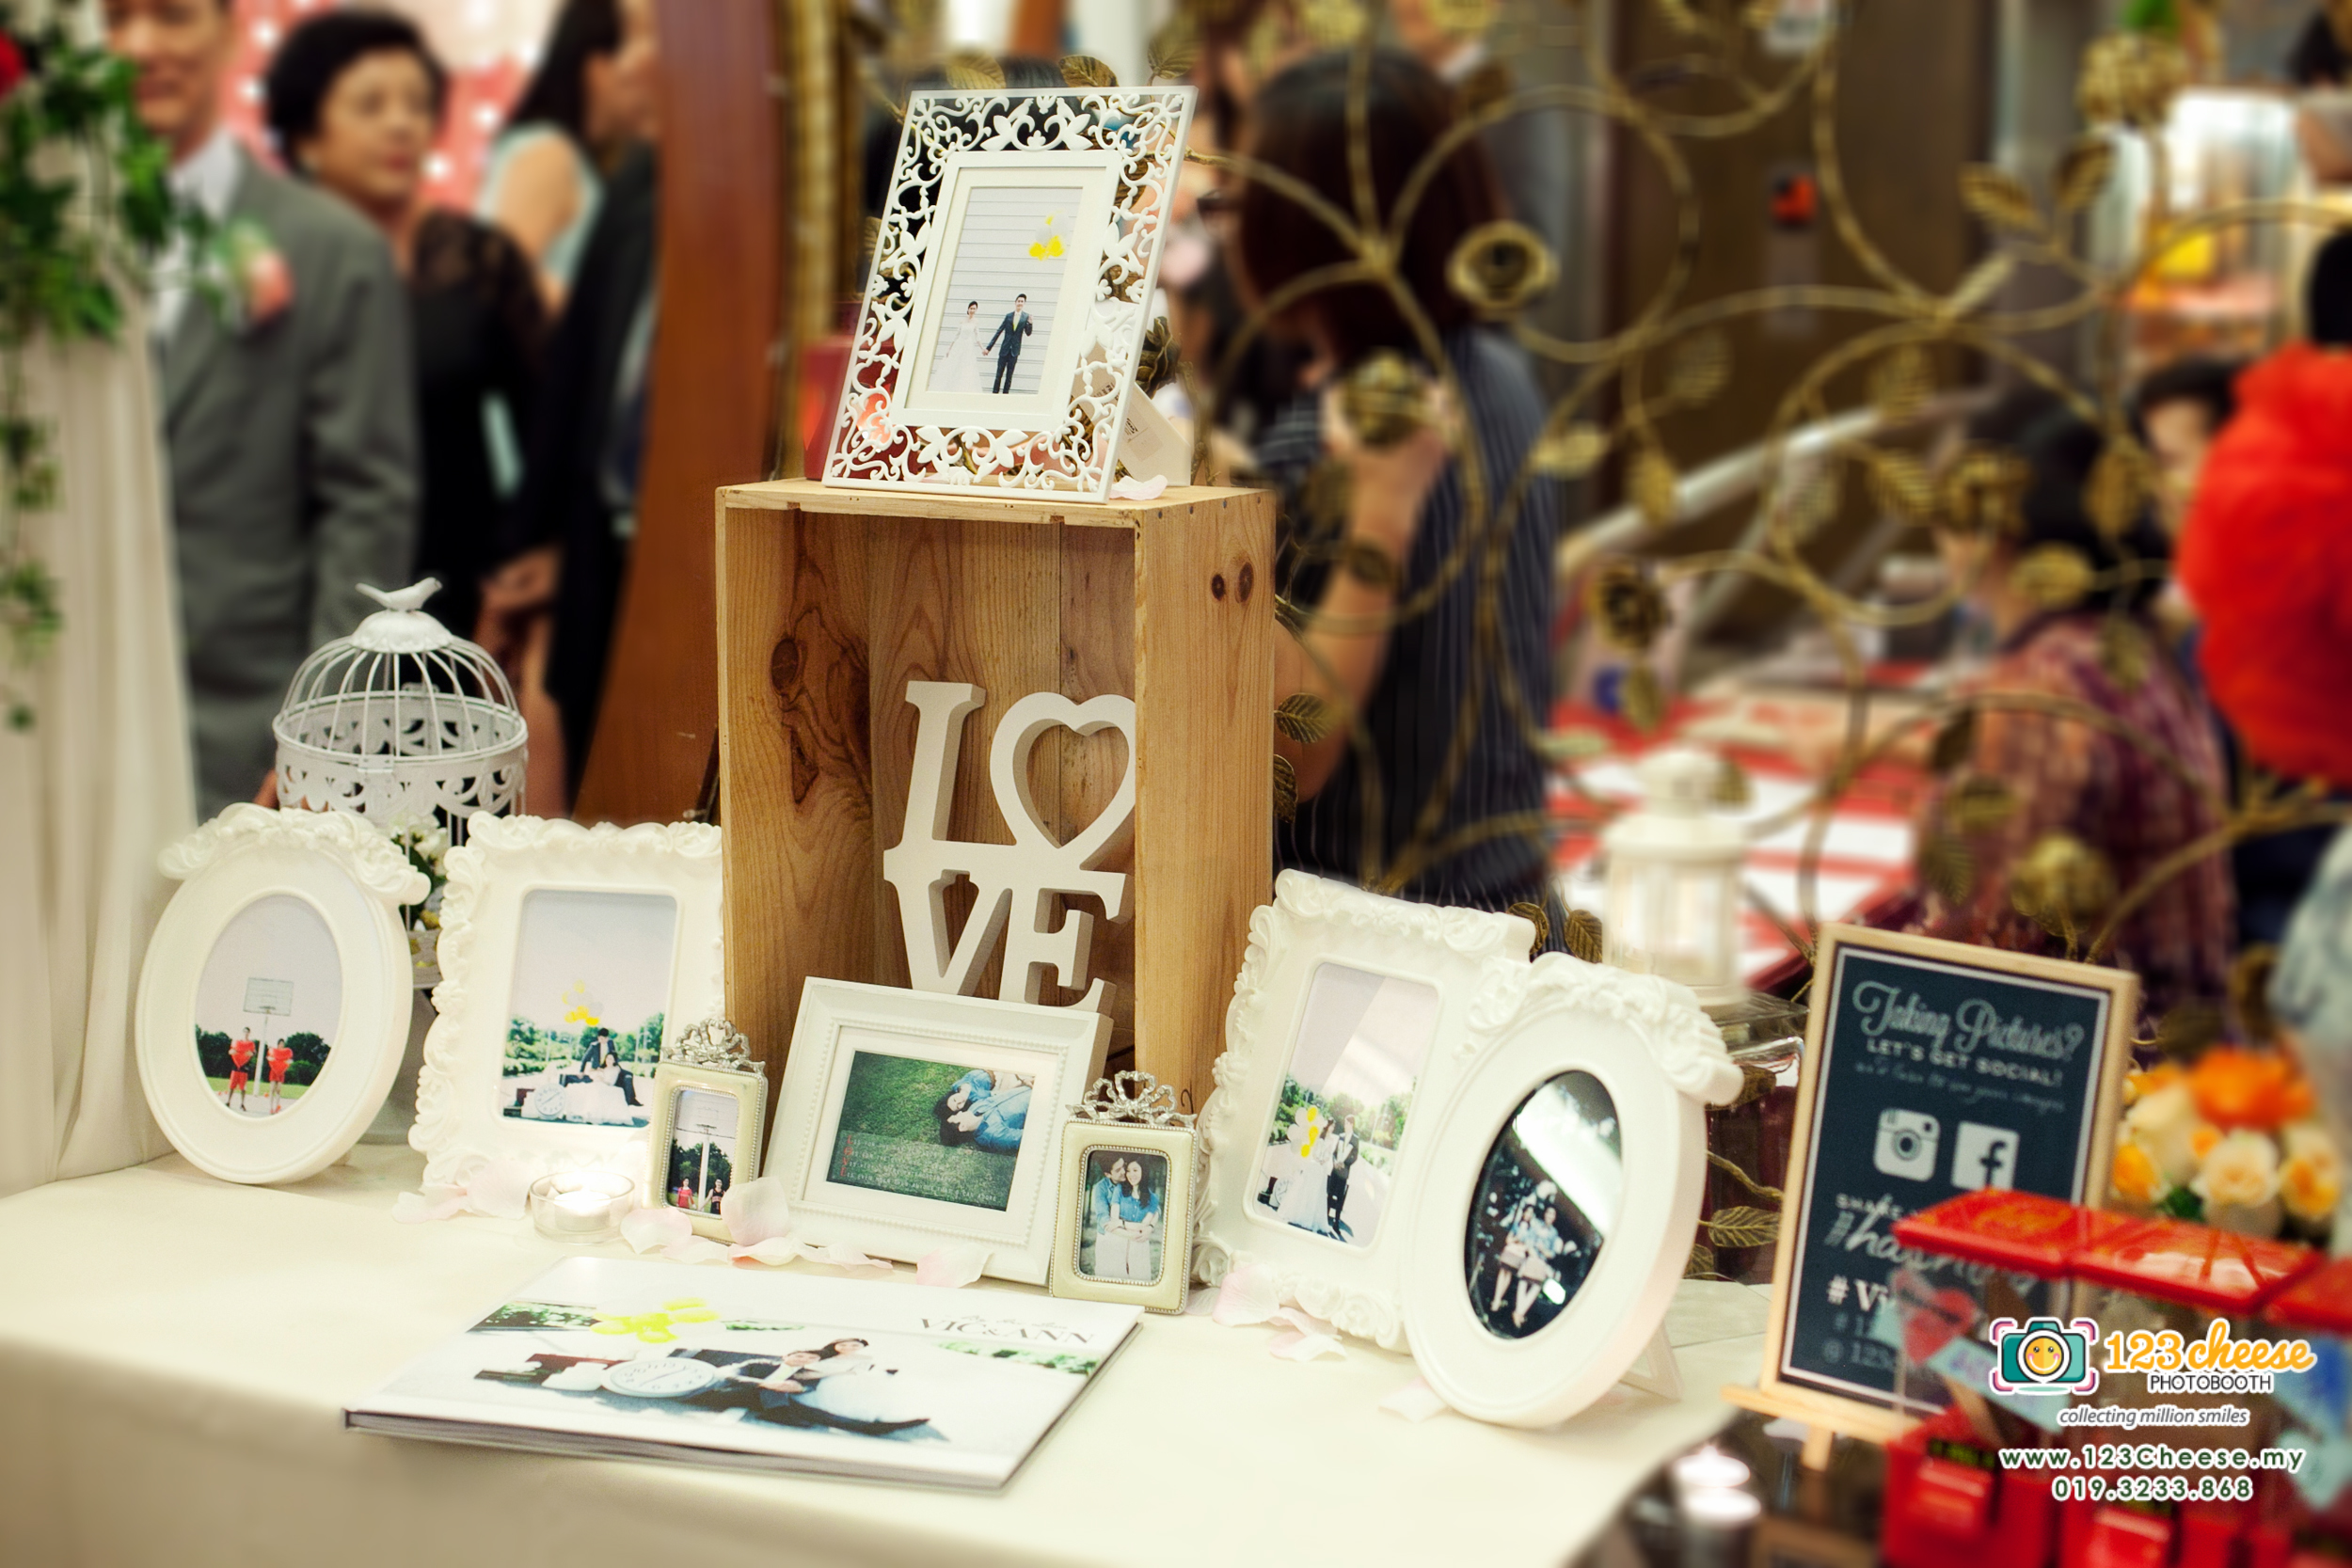 FREE Album Table Decoration For 123Cheese Photo Booth Rental (T&C)